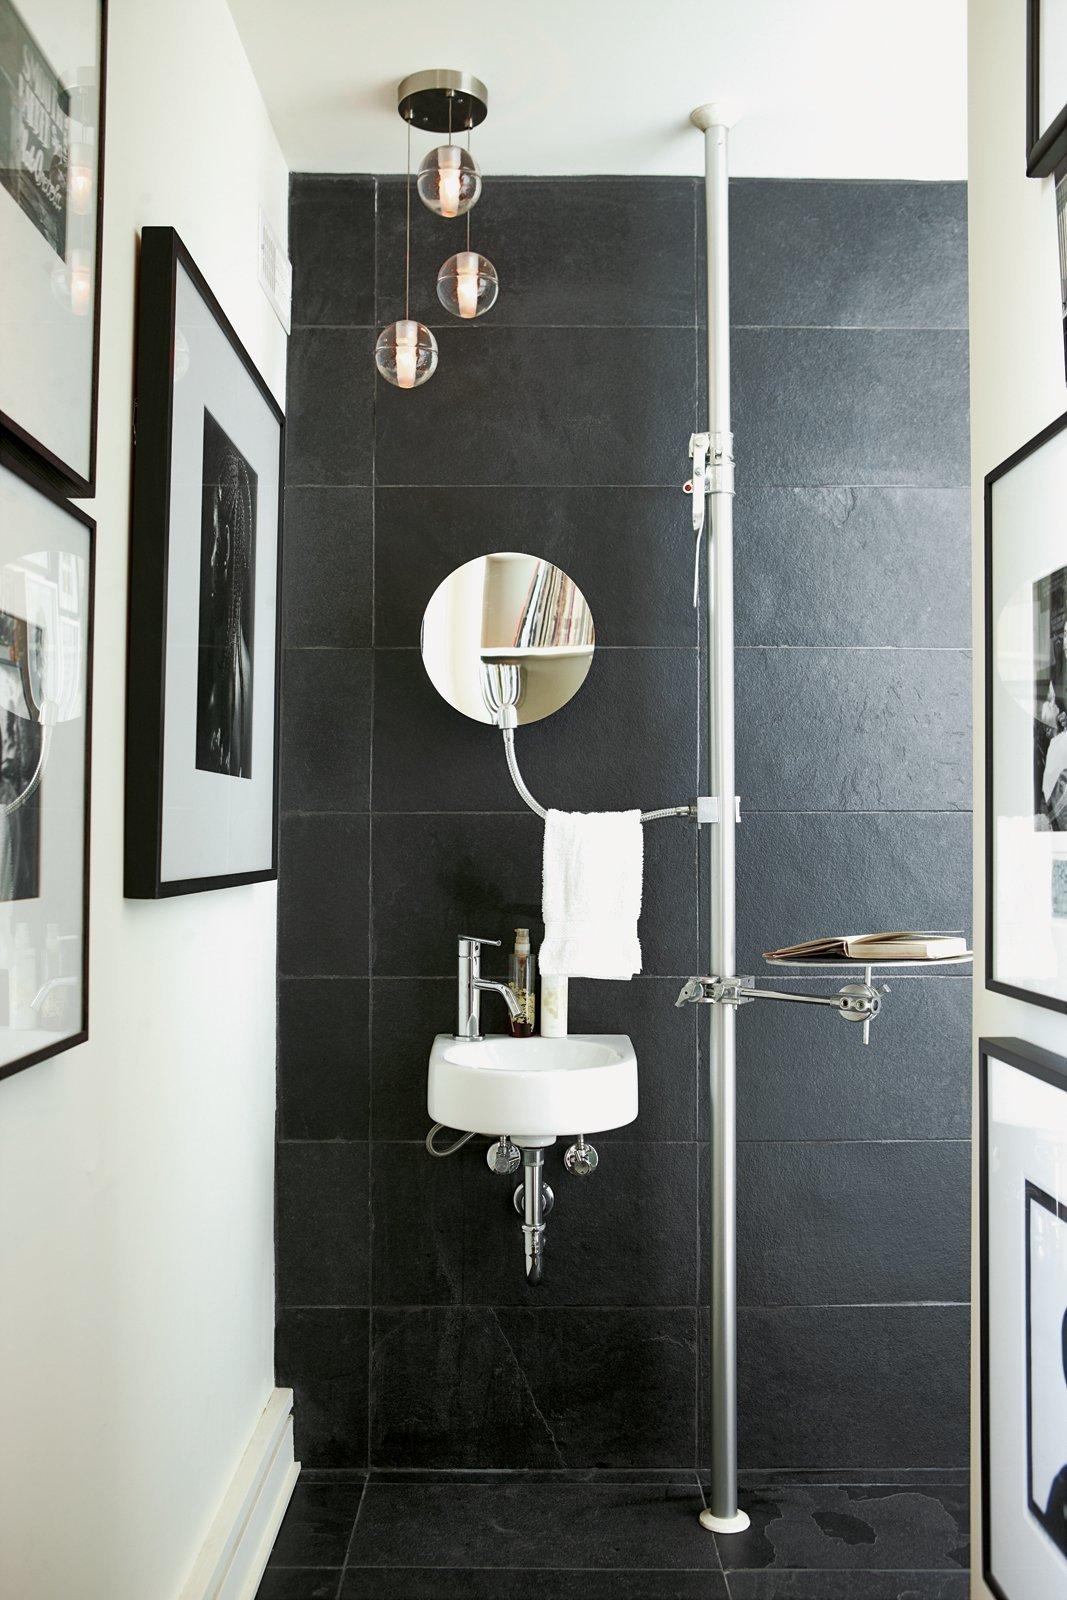 Bath Room, Wall Mount Sink, and Pendant Lighting For guest bathrooms, where only minimal storage systems are needed, why not go light and vertical with a modular floor-mounted Autopole shelf system with a mirror, soap dish, hand towels, and a tray hang by Alu that frees up floor space.  Best Photos from 8 Bathroom Storage Hacks You Probably Haven't Tried Yet